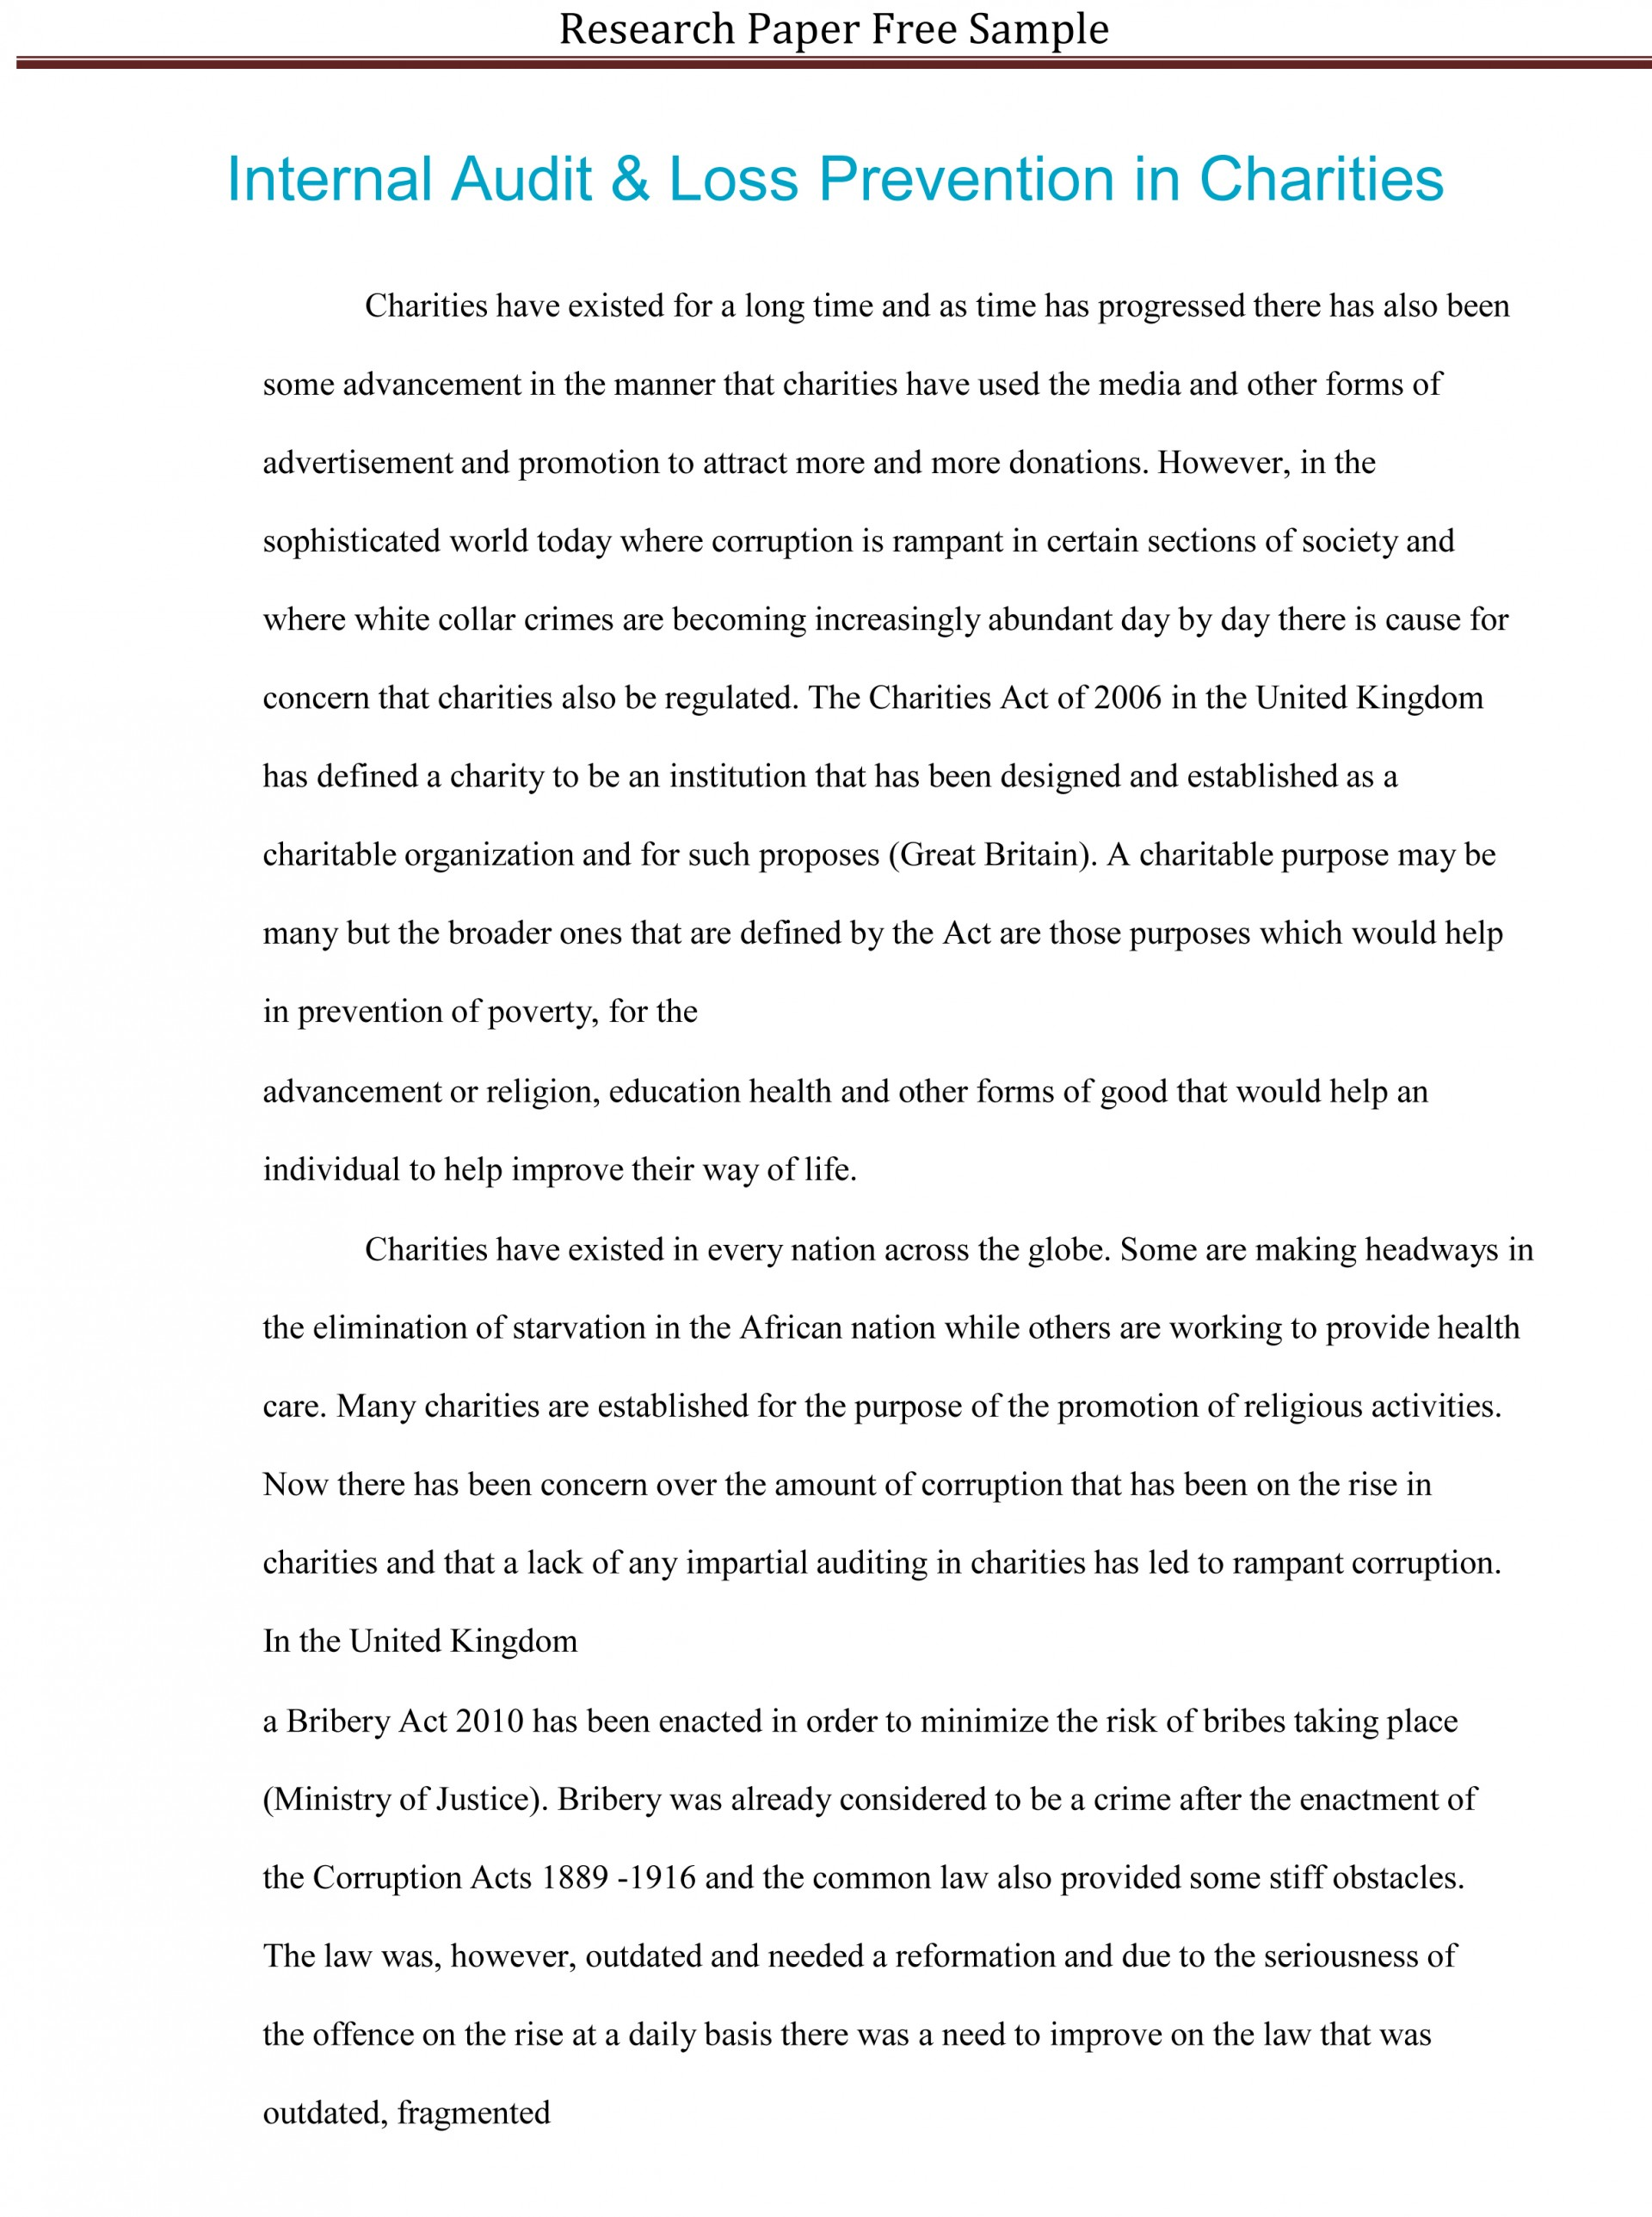 017 Research Paper Sample Argumentative Topics For College Archaicawful English 1920